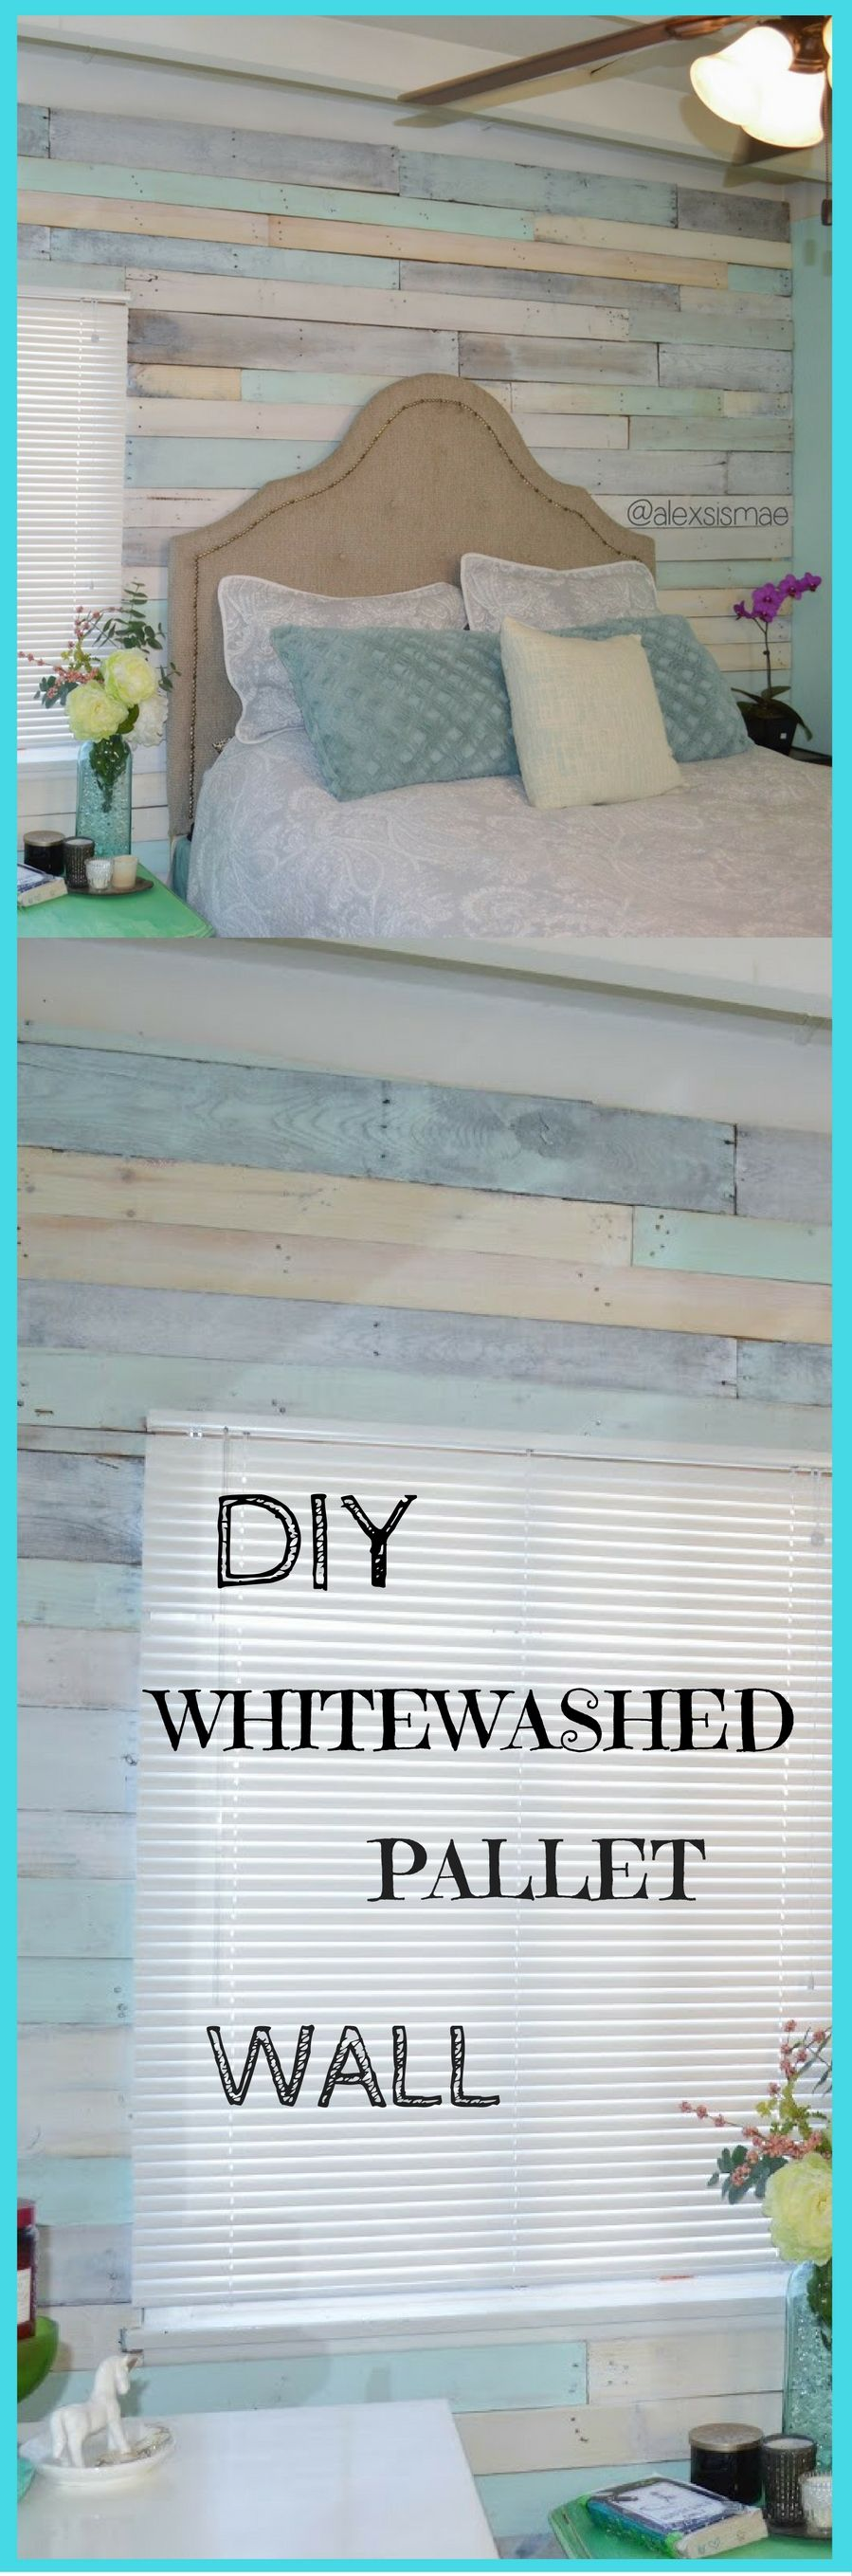 DIY Whitewashed Pallet Wall Very Cool Look For Little Money Vidstaged TDYs